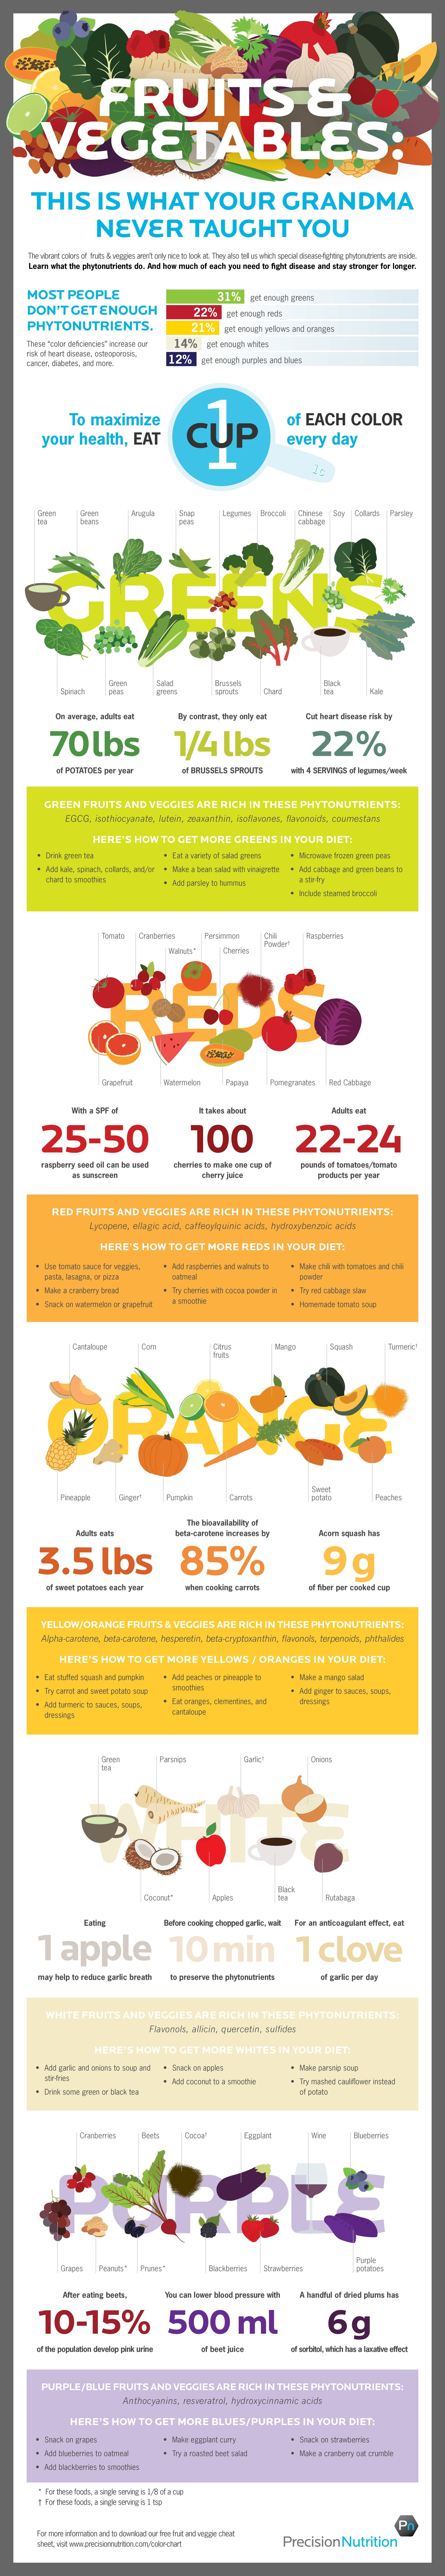 Sharing post from: http://lifehacker.com/this-infographic-shows-the-phytonutrients-you-need-to-s-1547268141